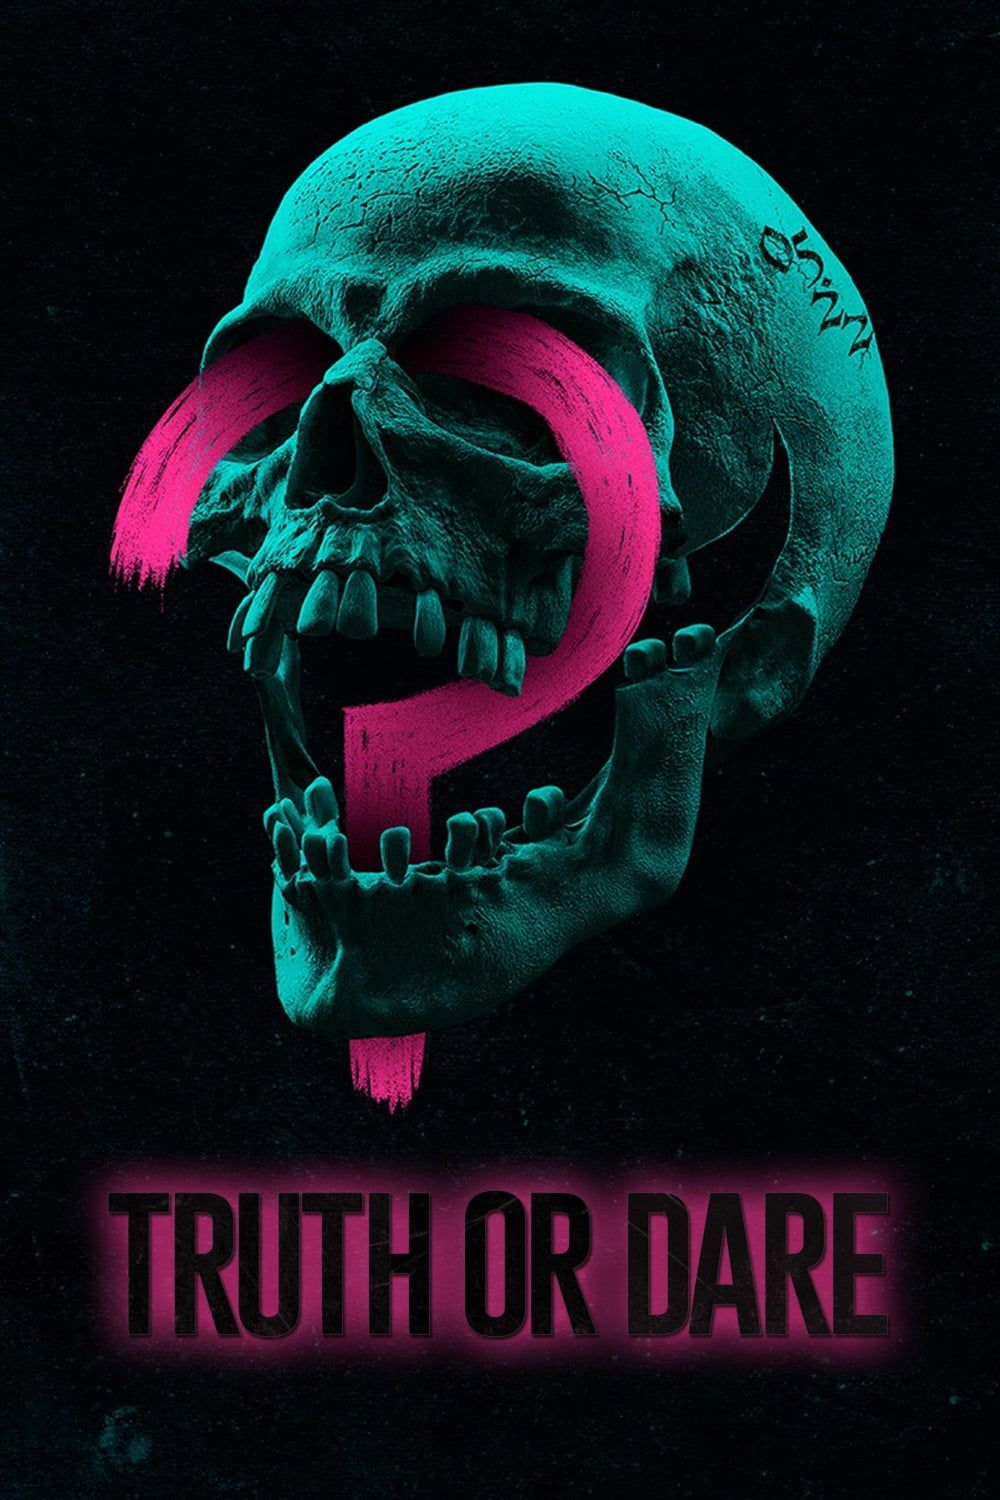 Truth or Dare FULL MOVIE HD1080p Sub English Play For FREE